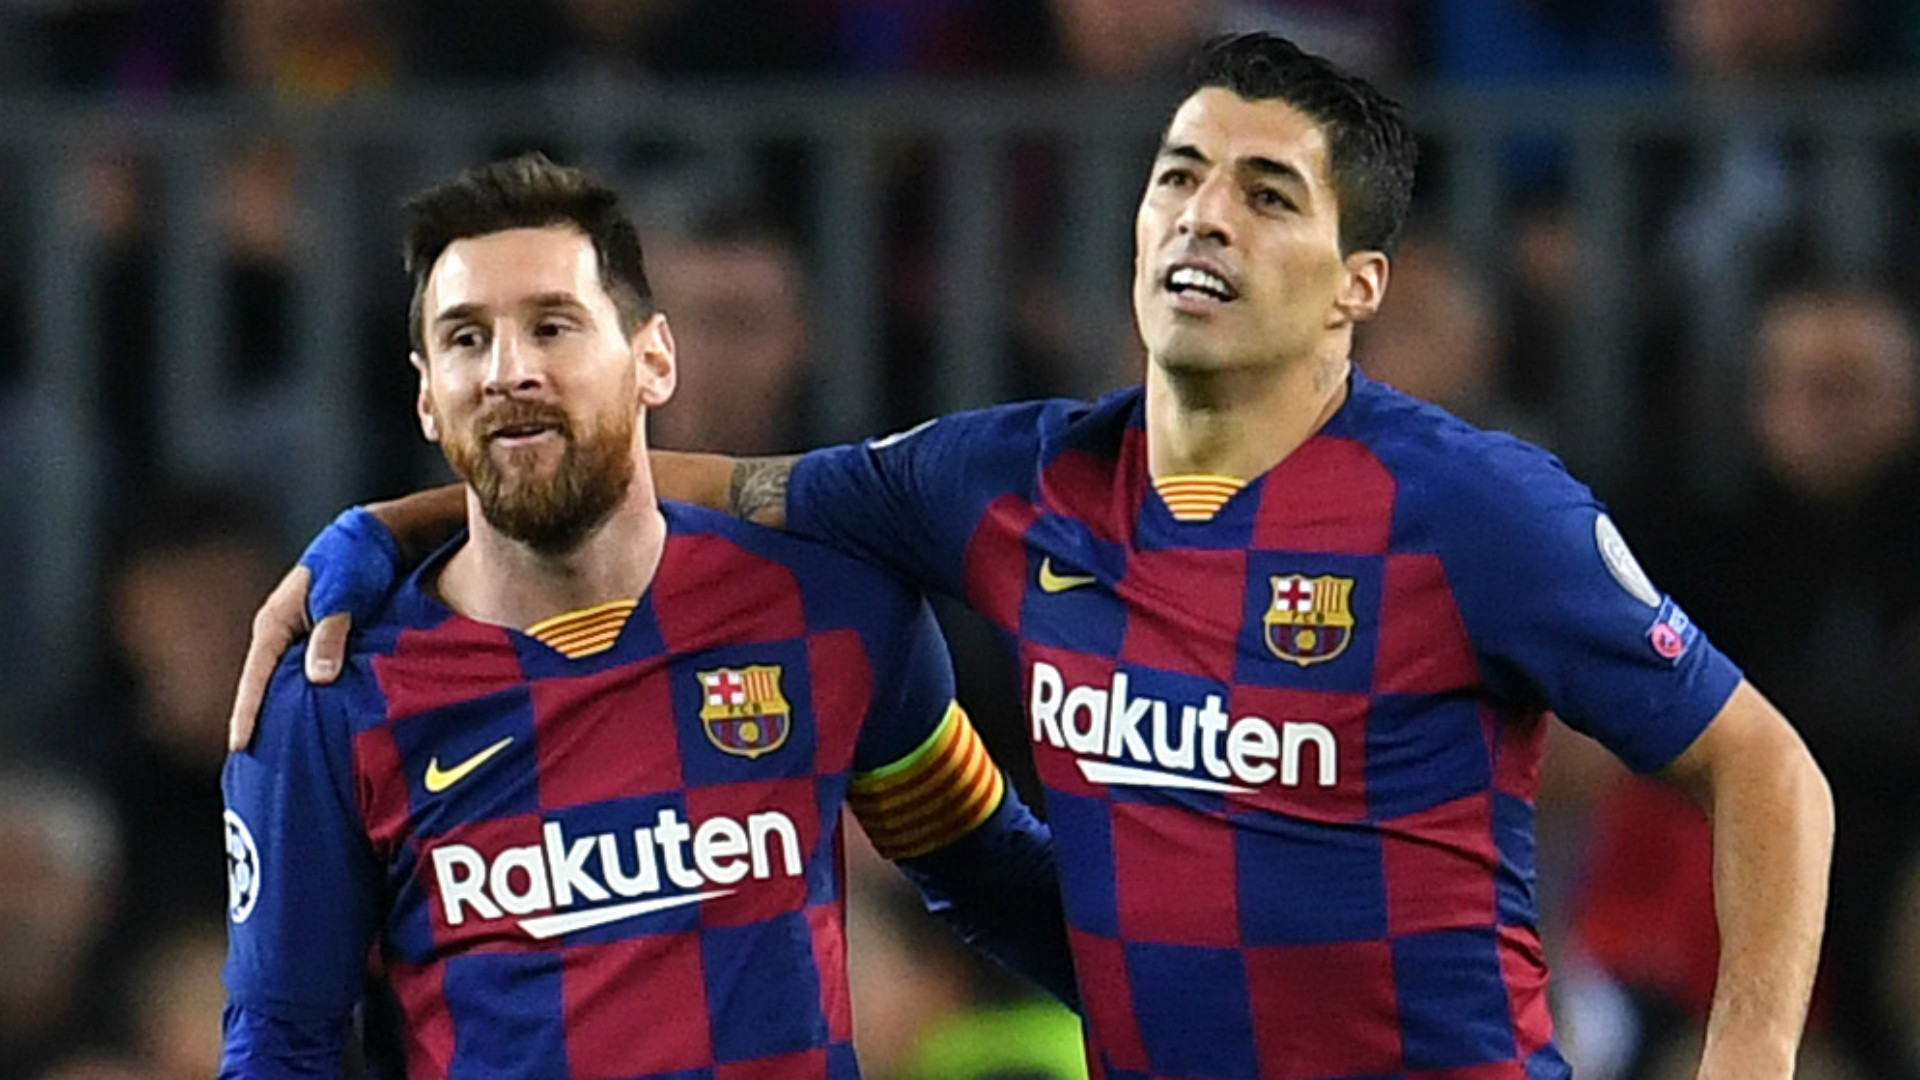 Suarez: Messi and I still talk a lot but about life, not football | Goal.com